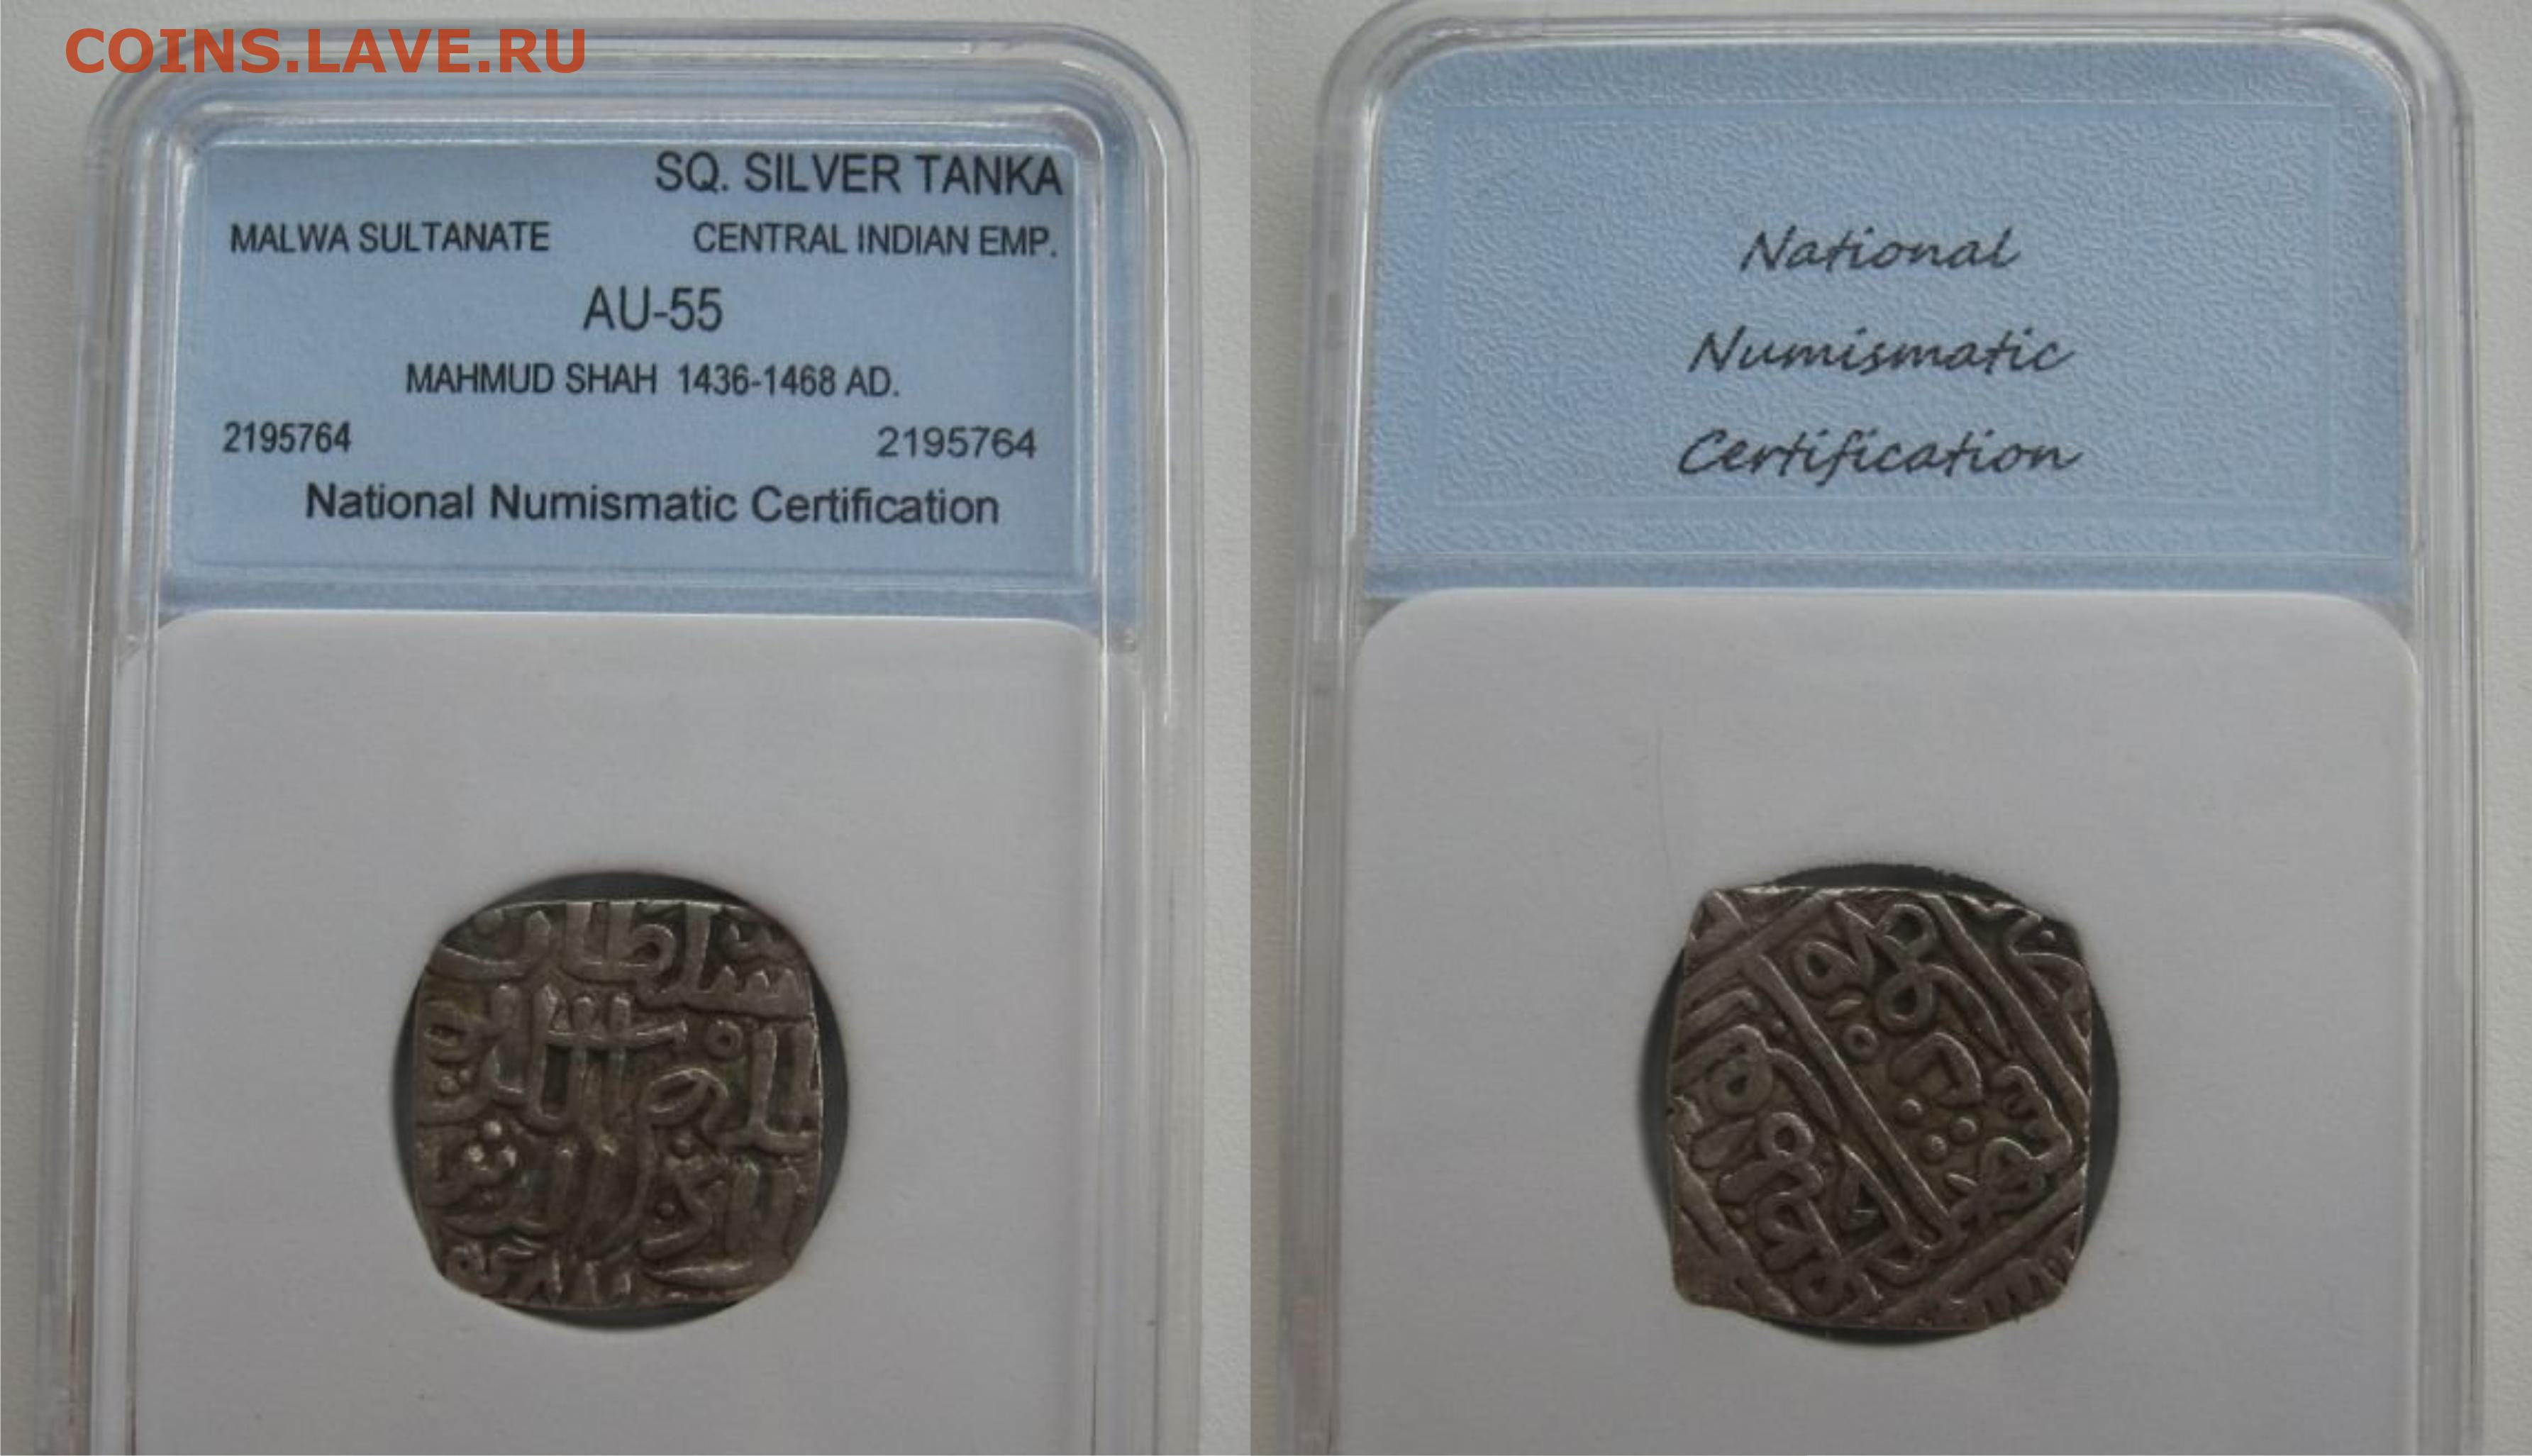 National Numismatic Certification